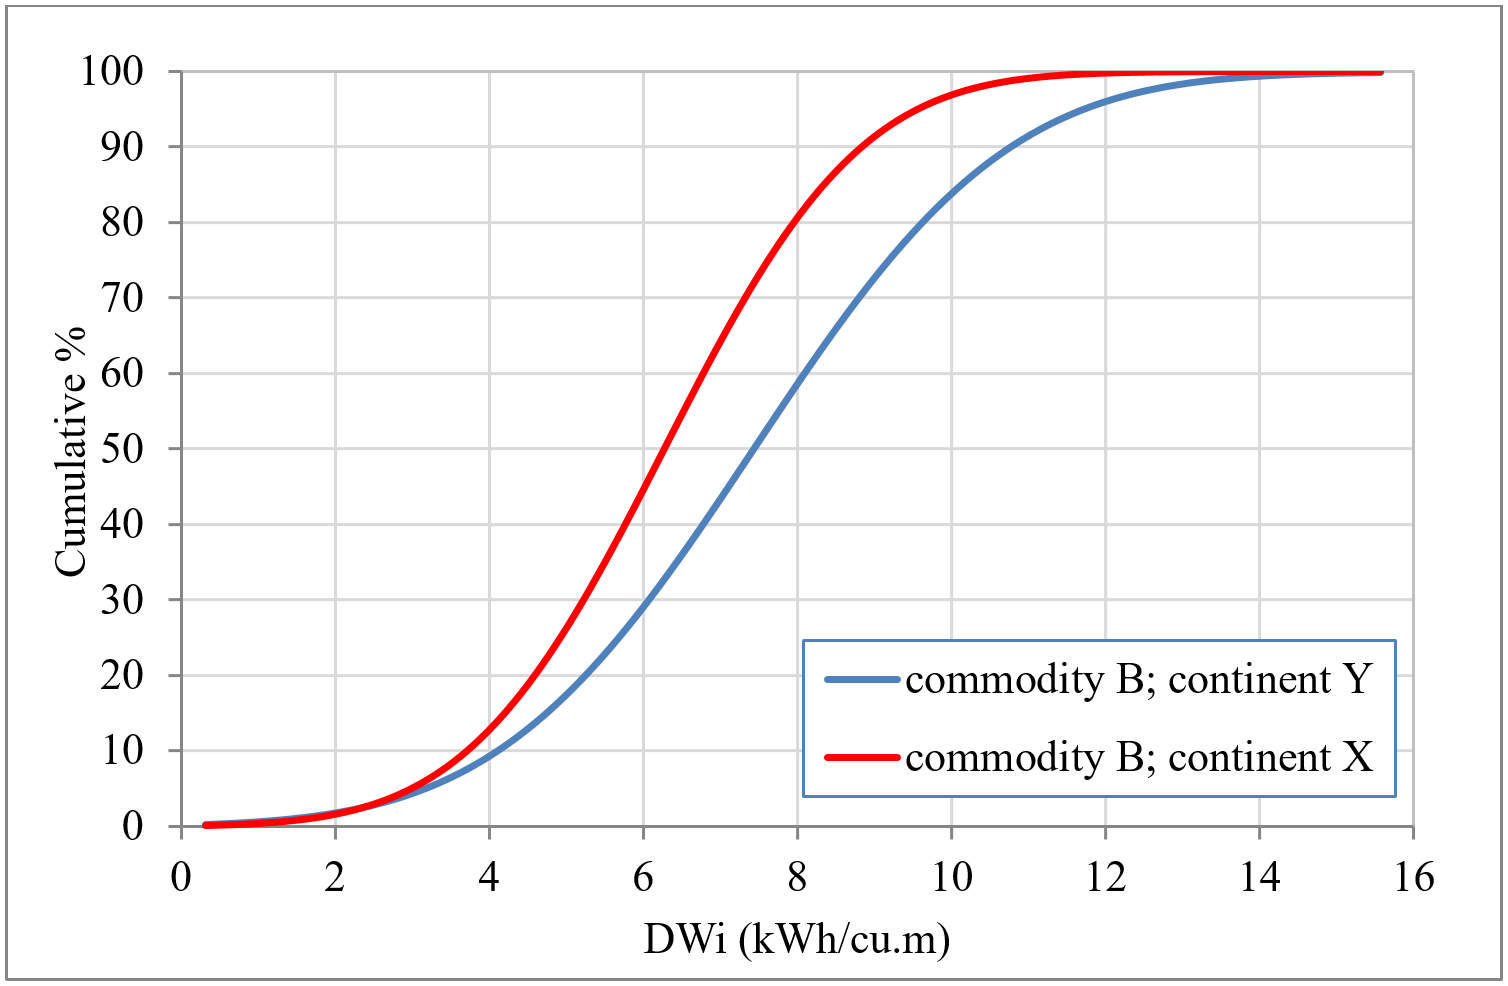 figure 2 - Cumulative Distributions of the DWi Parameter of a Particular Commodity vs Continent